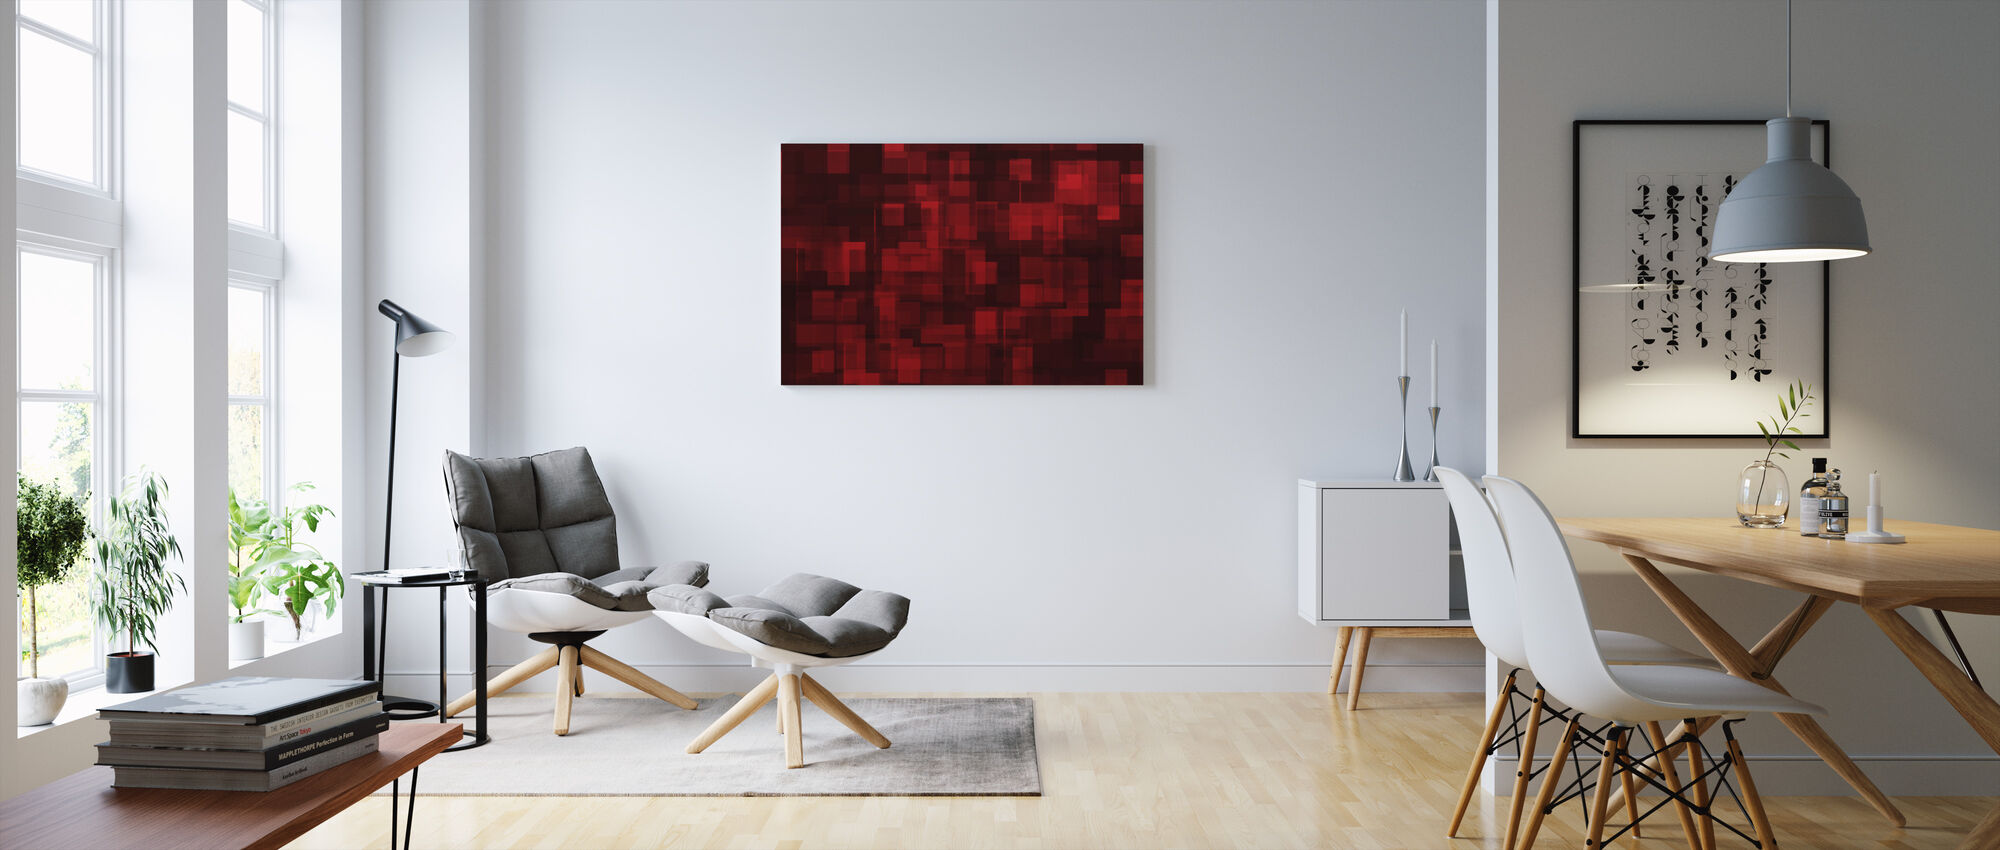 Chaotic Red - Canvas print - Living Room